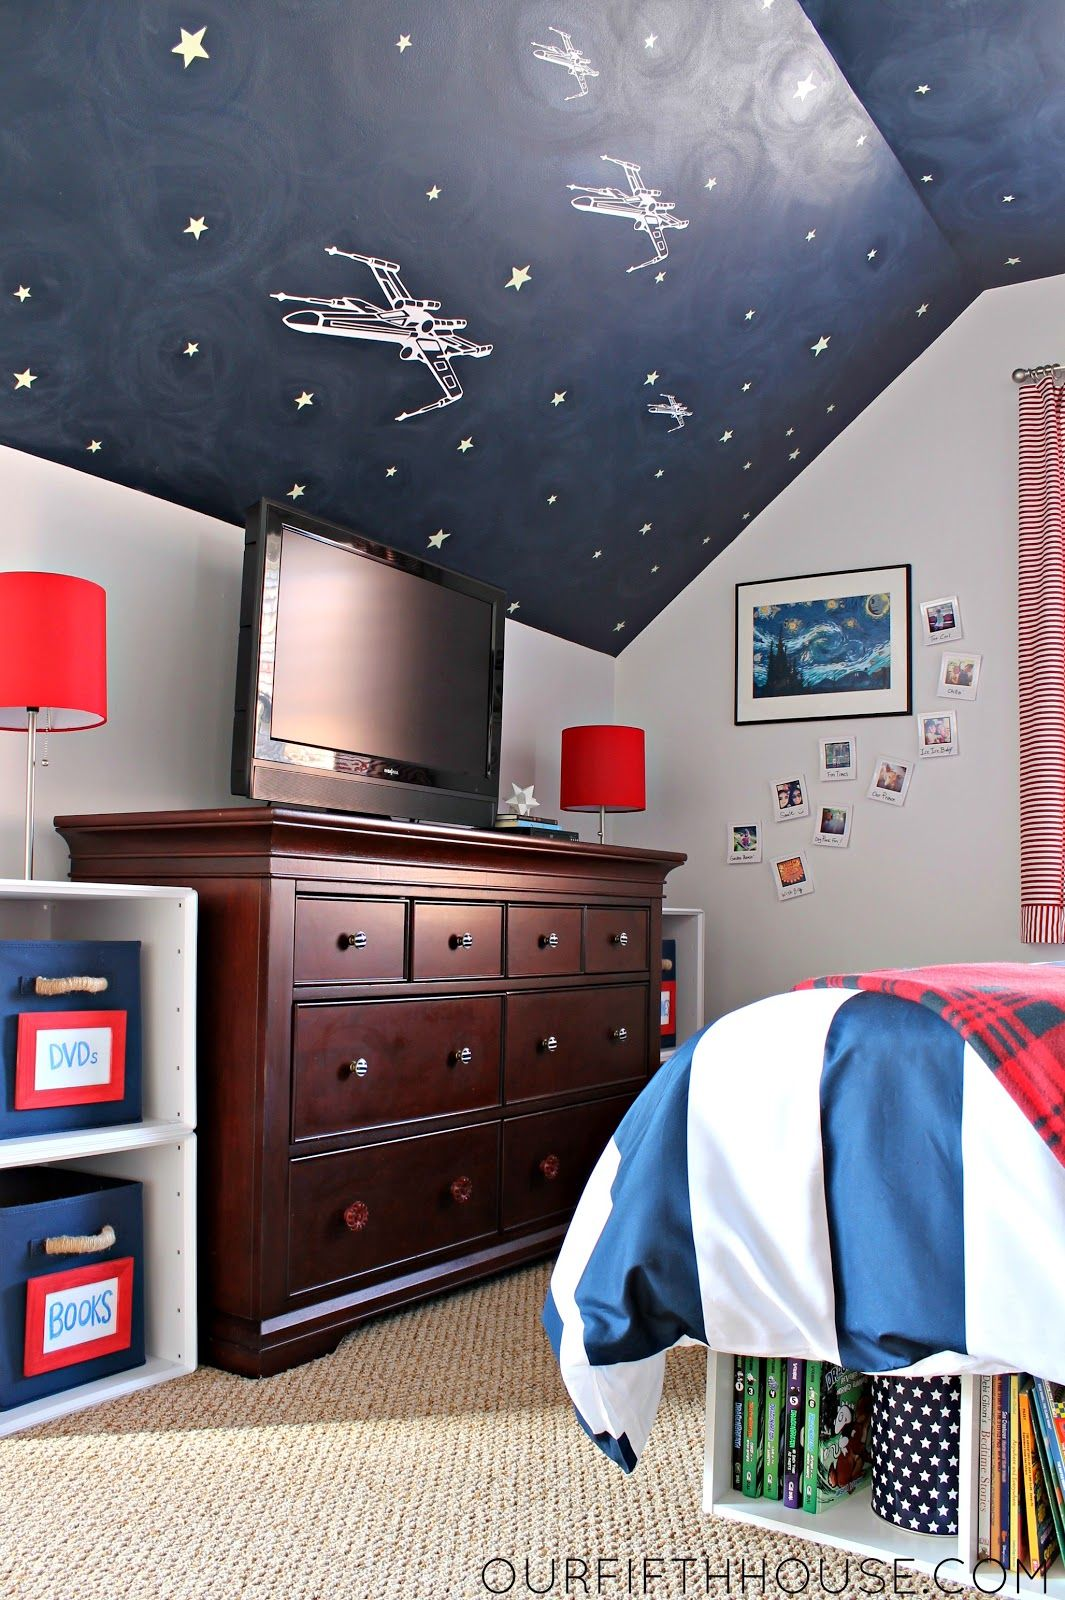 Kids bedroom ceiling decoration - Star Wars Bedroom For Boys It Was An Inexpensive Way To Bring Home That Star